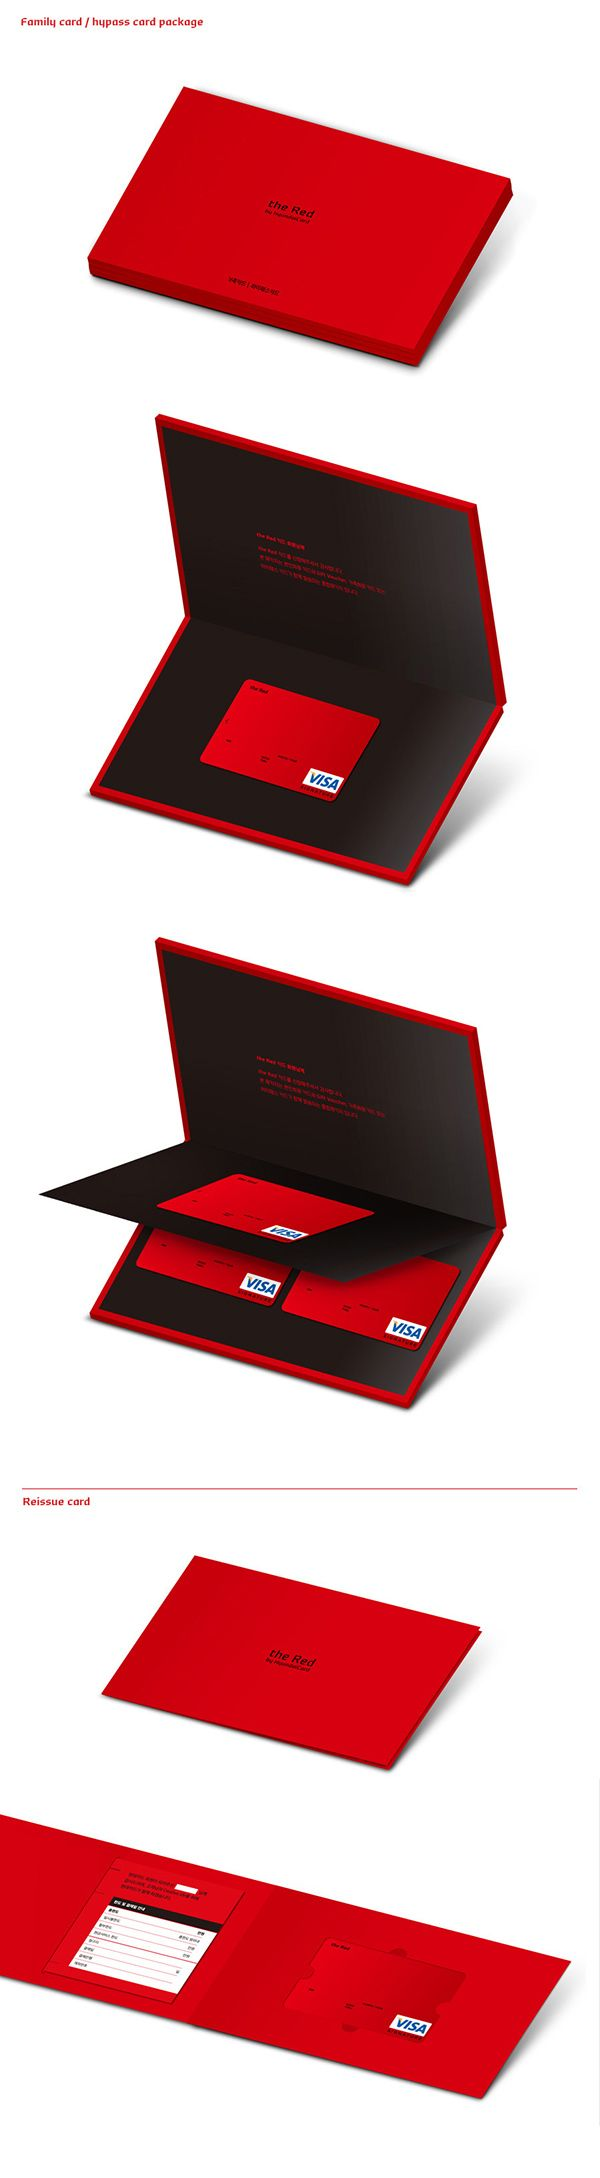 Hyundai Card the Red Package Renewal Project